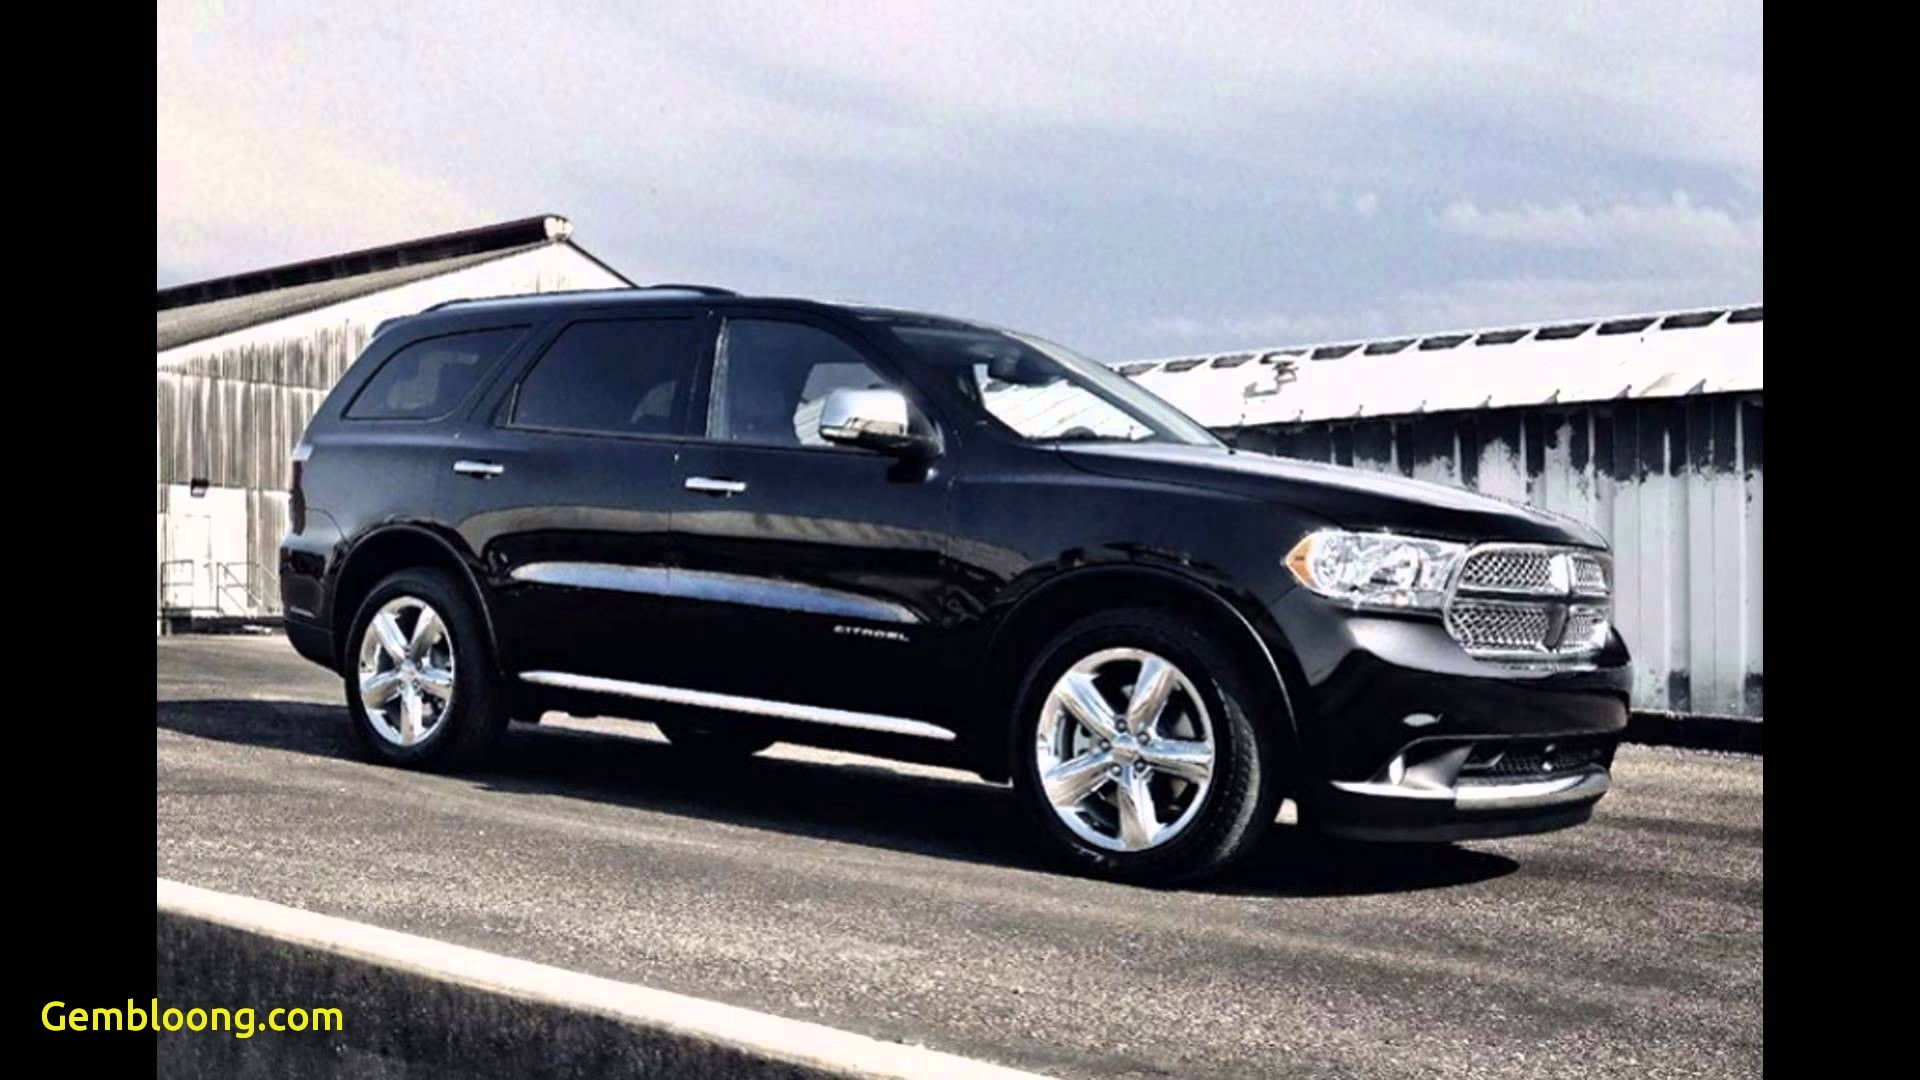 All Cars for Sale Near Me Fresh Vehicles for Sale Near Me